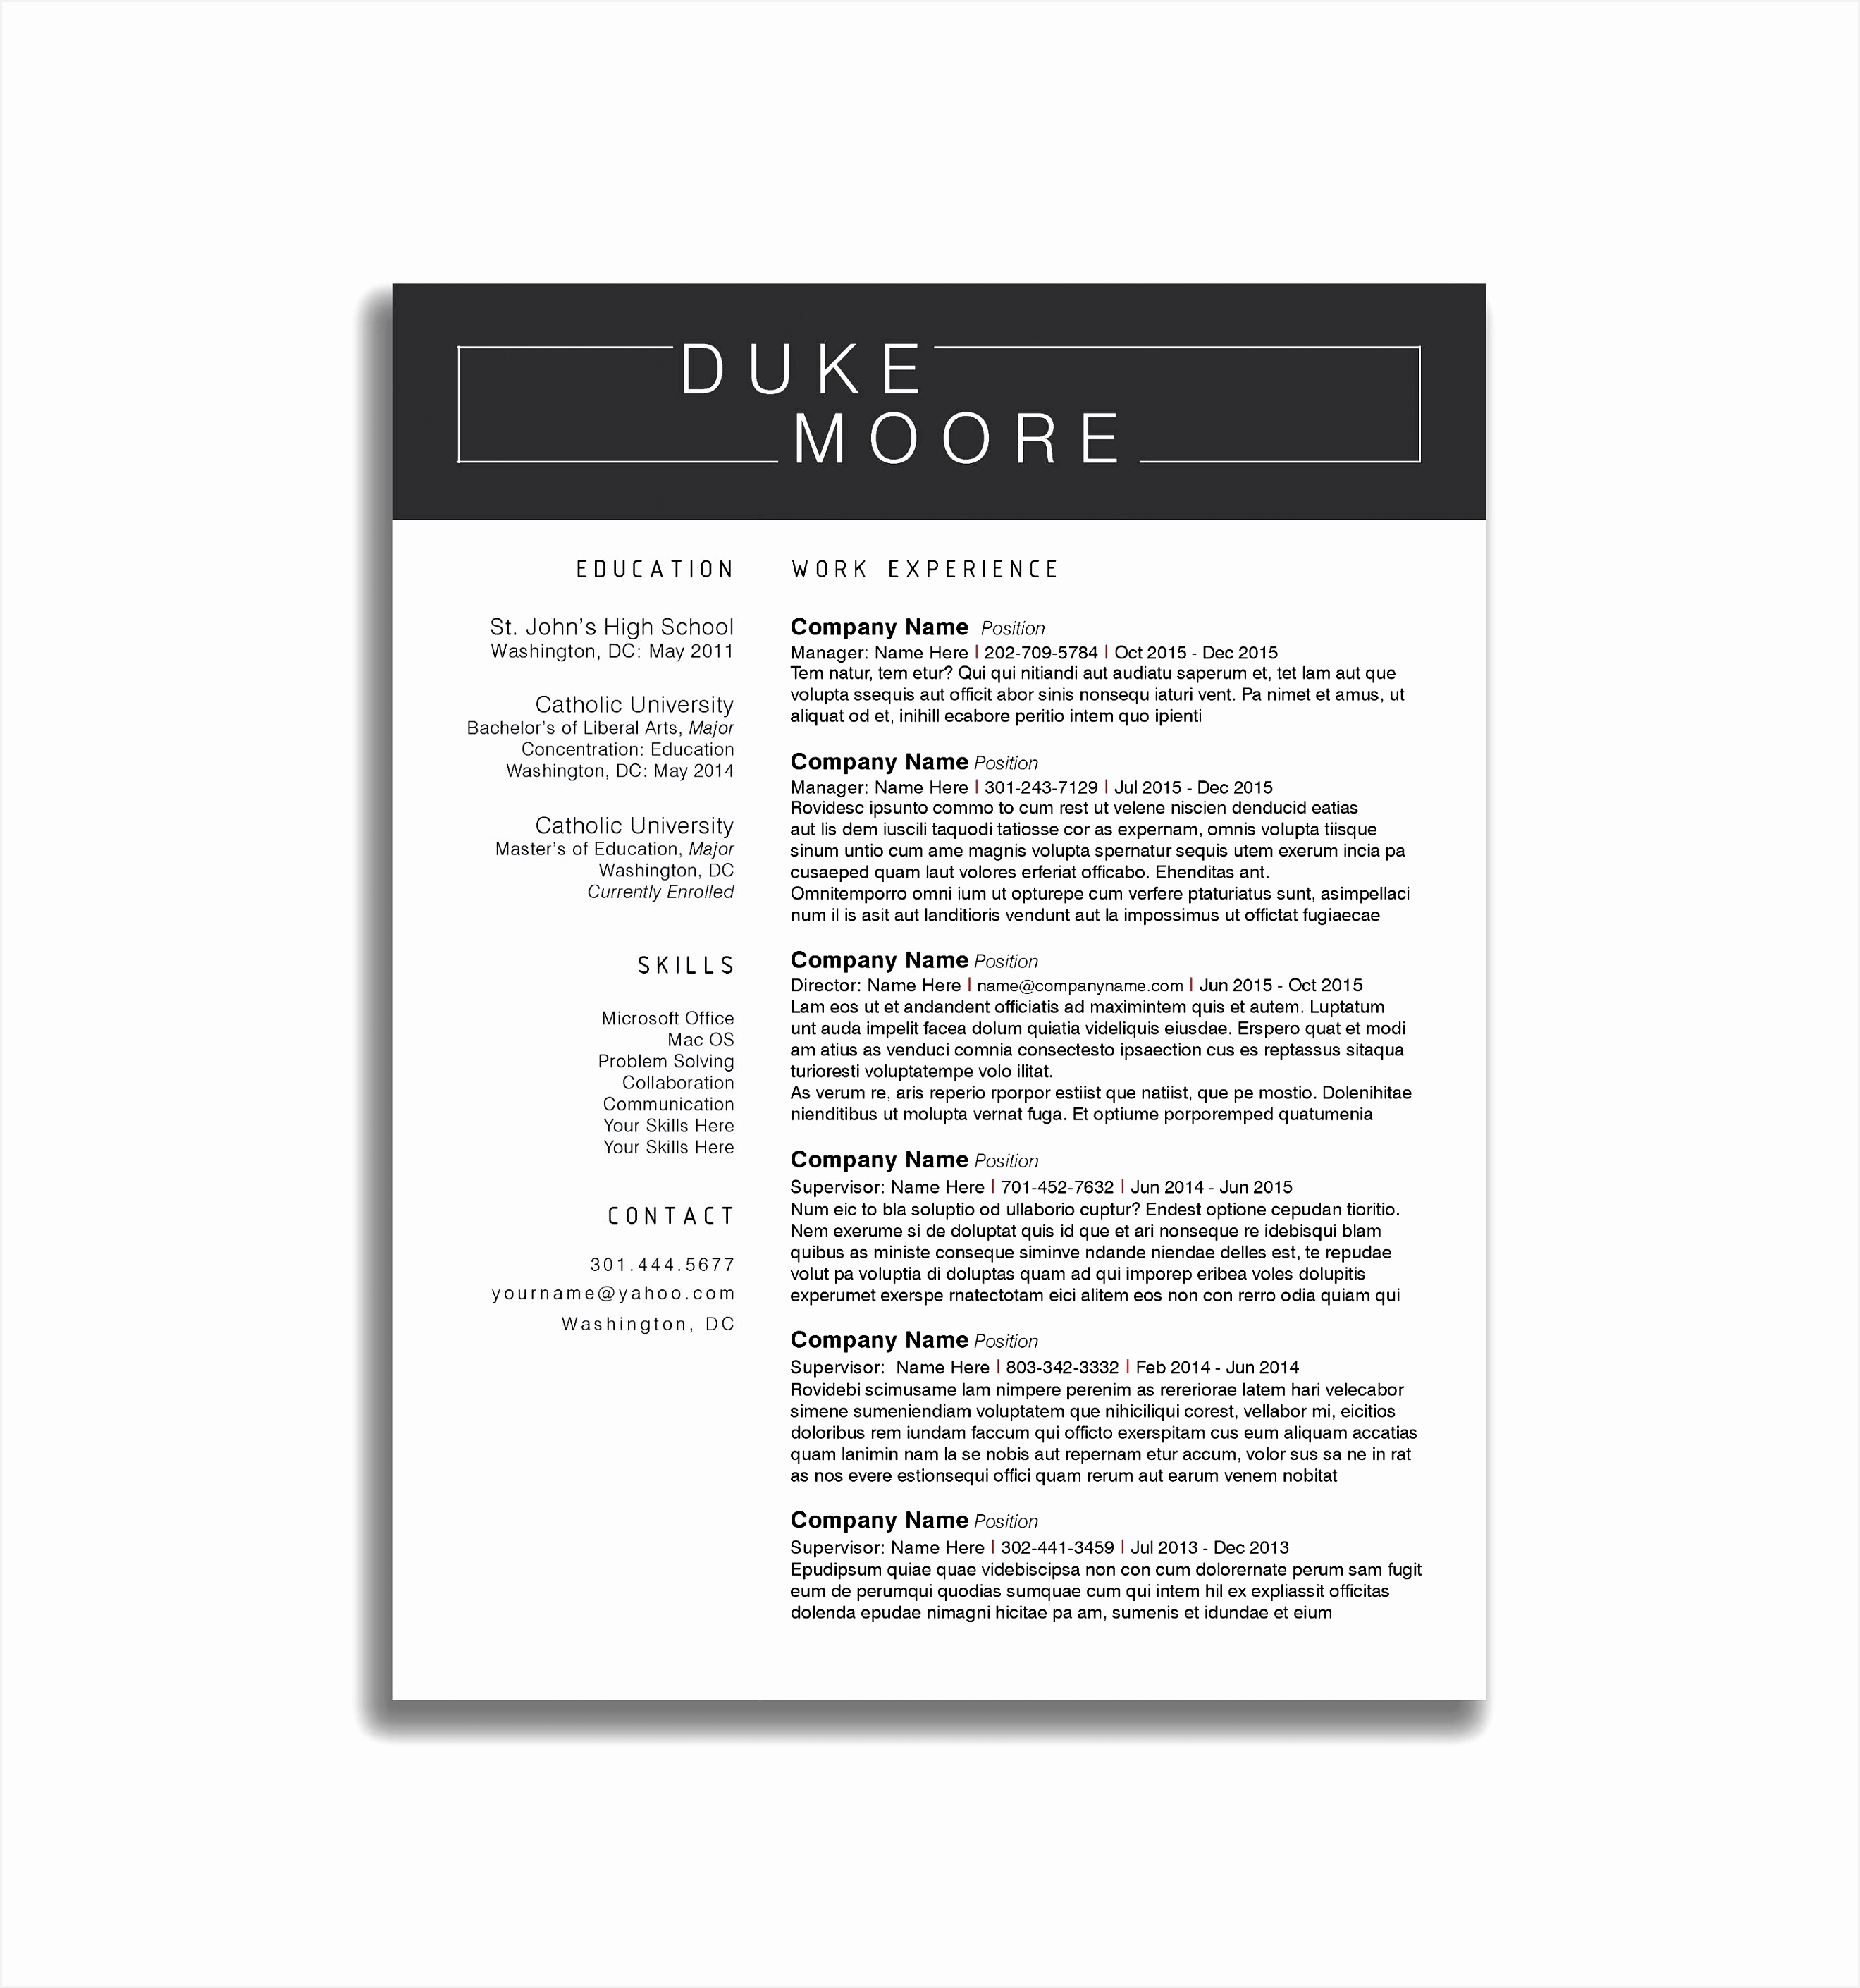 Best Resume Tips Best Rn Resume Sample Unique Writing A Resume Tips New Resume Examples 282026398sklf